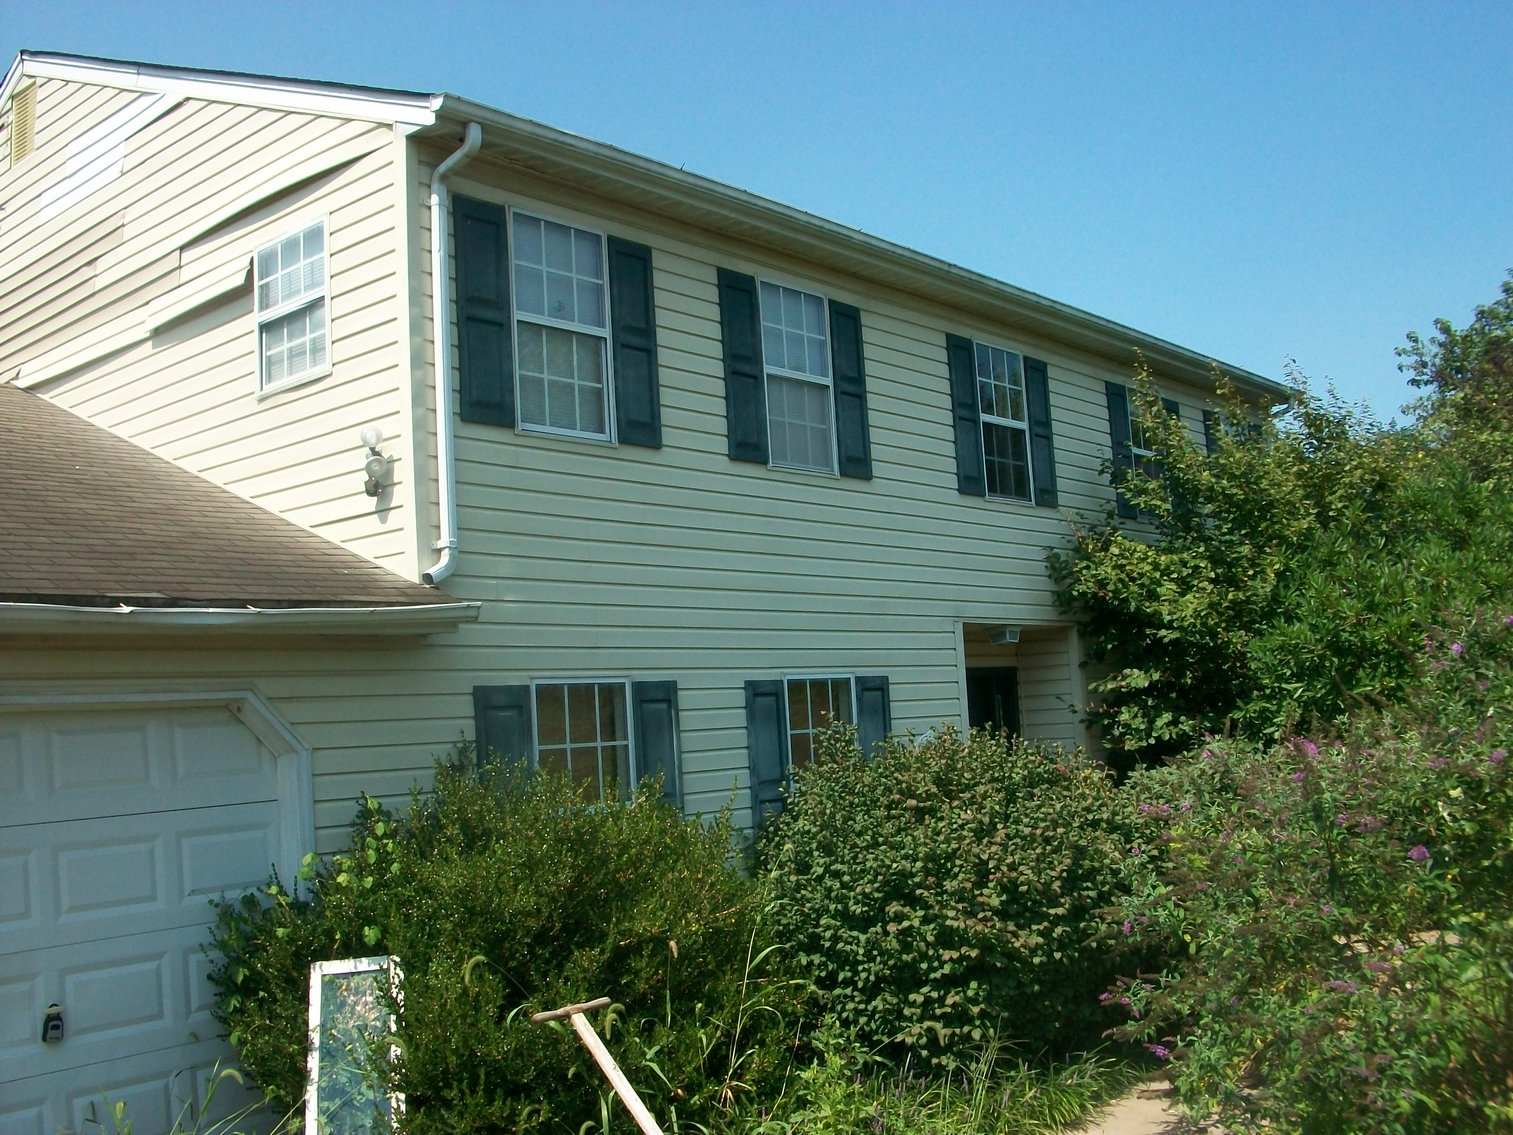 Image for ABSOLUTE TRUSTEE AUCTION: 5BR, 4BA House on 0.6413 AC (Warrenton, VA)